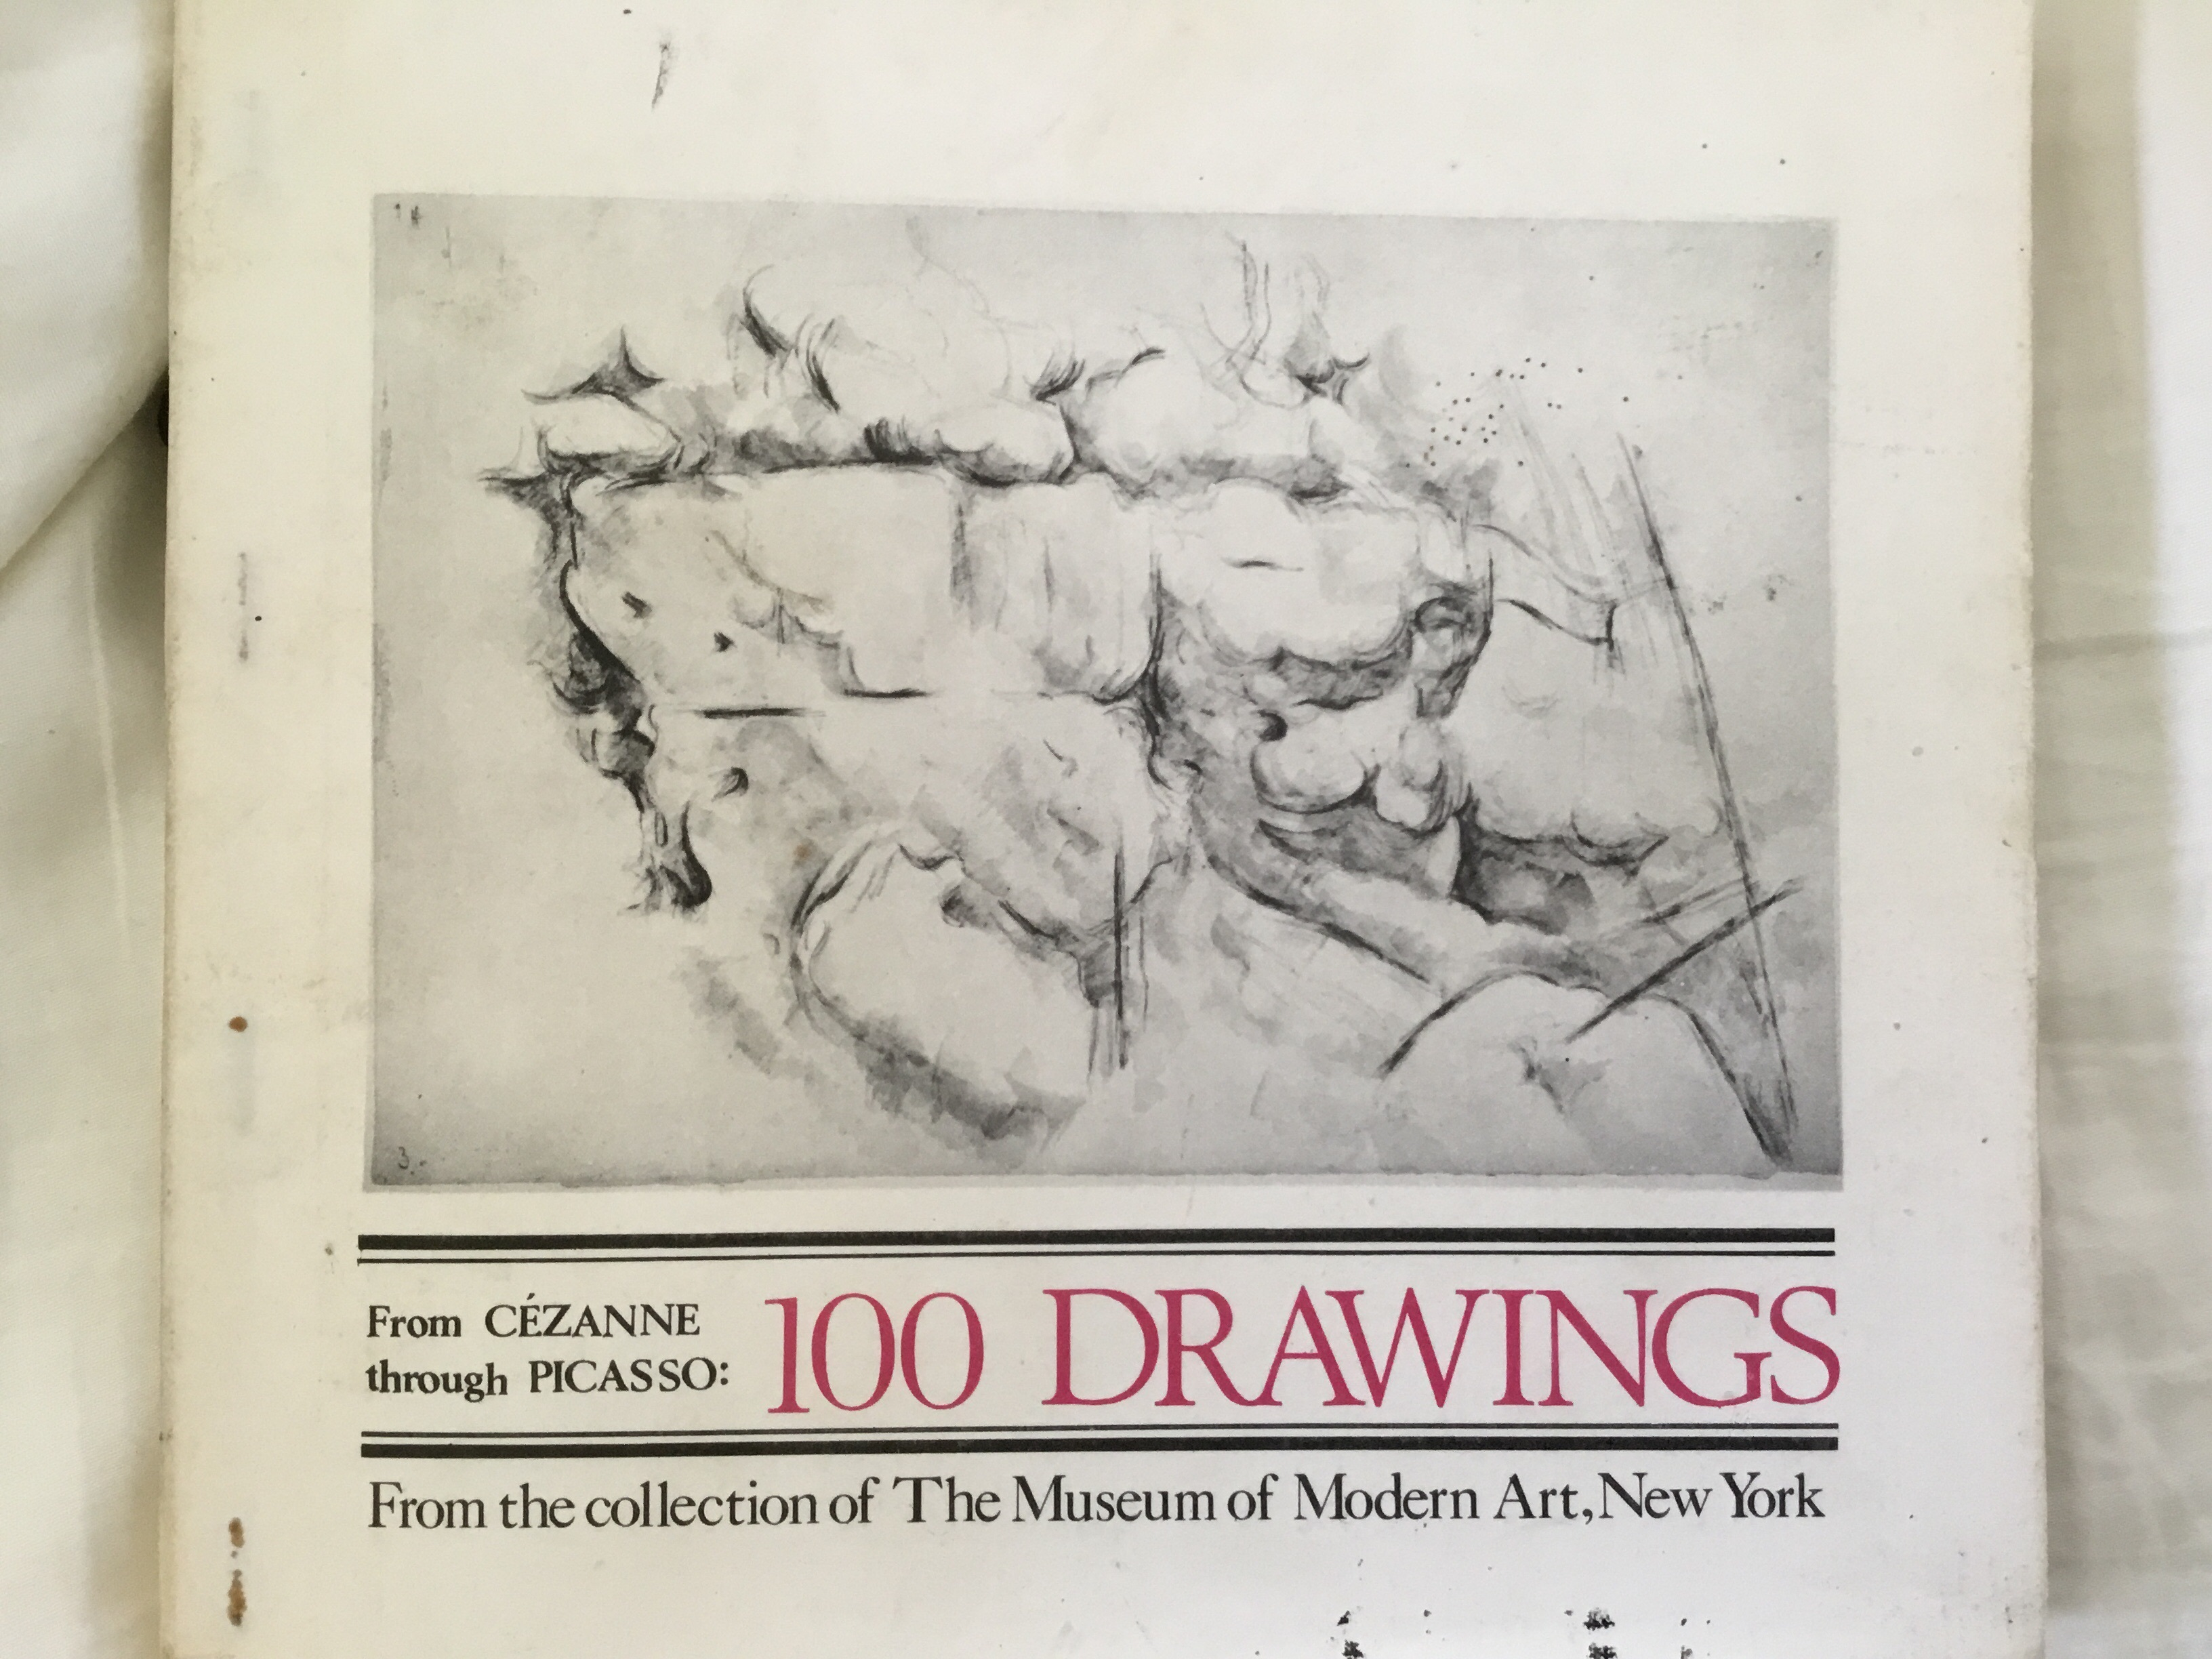 From Cezanne through Picasso: 100 Drawings